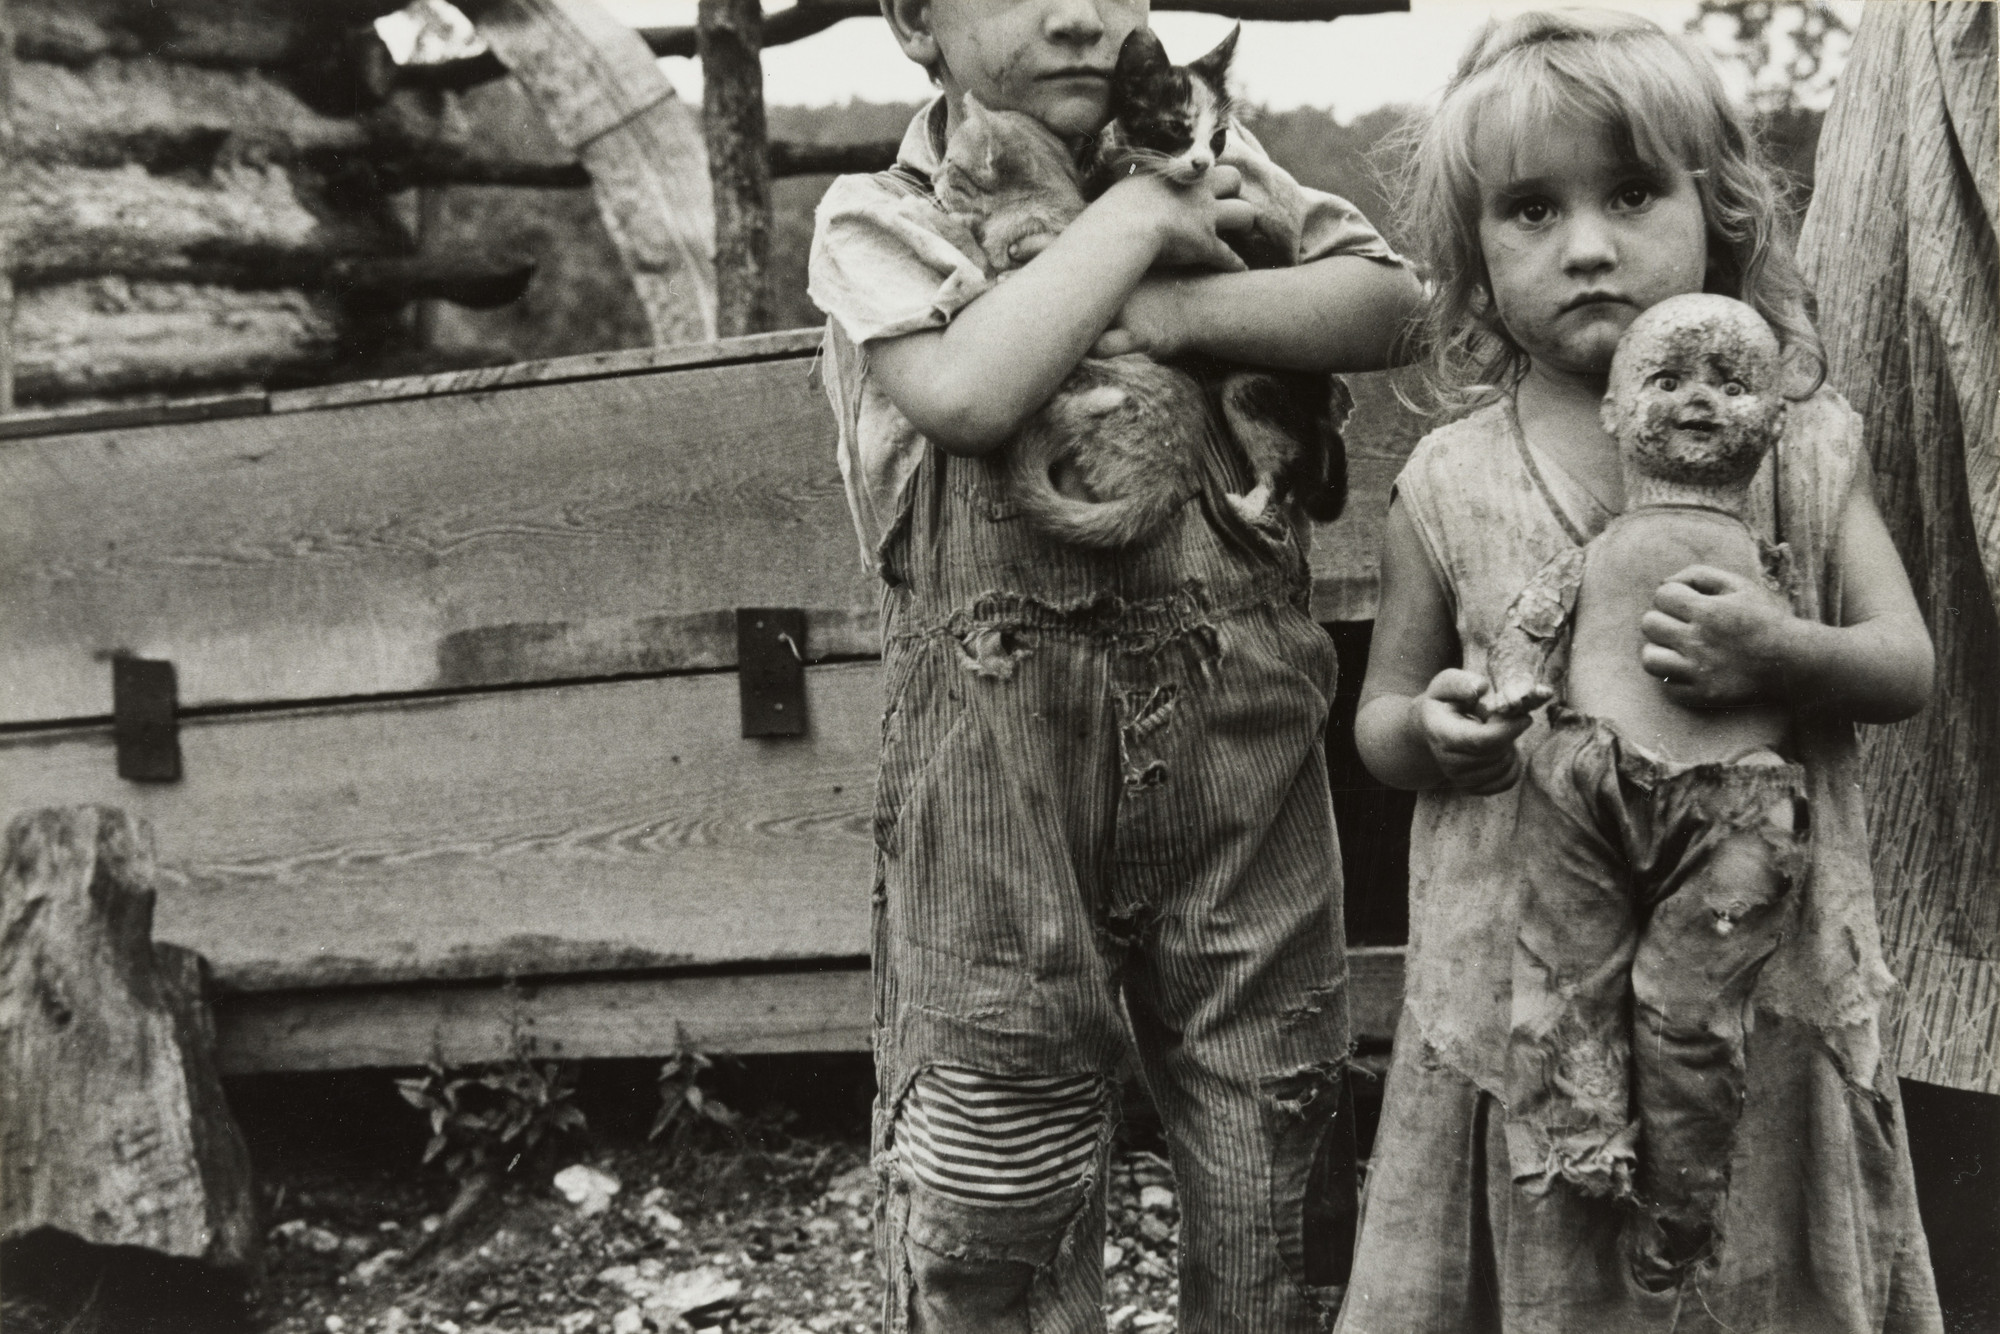 Ben Shahn. Children of Destitute Mountaineer, Arkansas. 1935